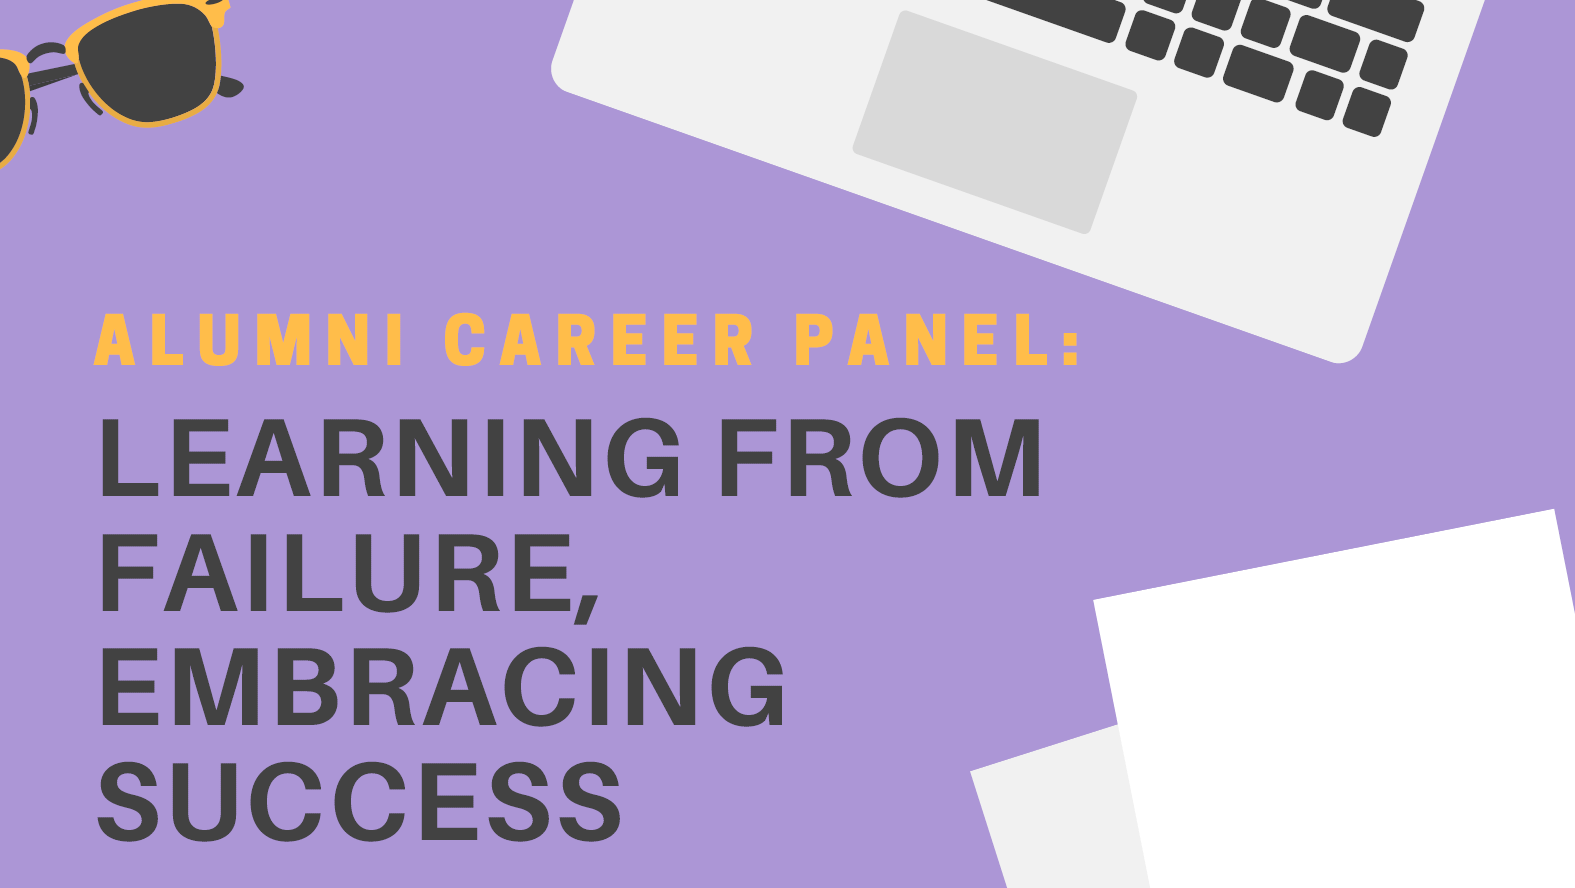 Alumni Career Panel Learning From Failure Embracing